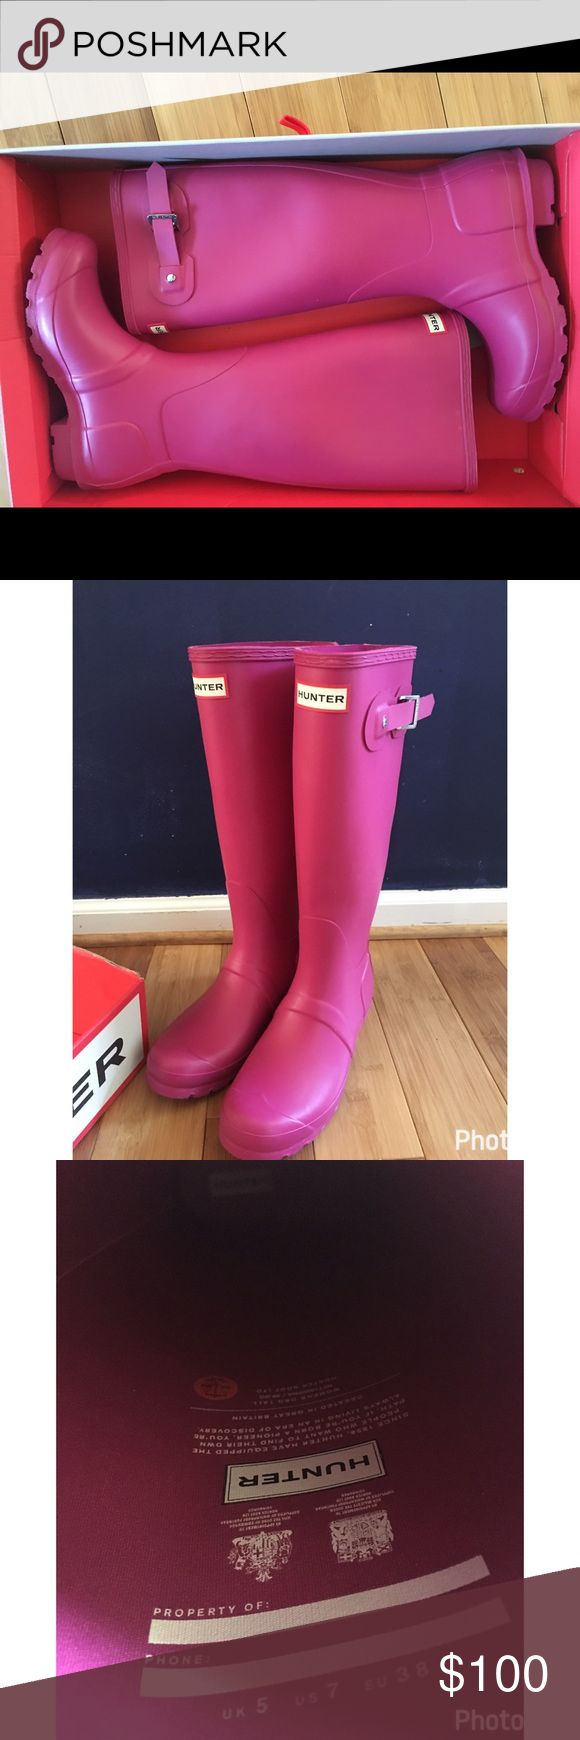 Hunter rain boots ☔️ April rain ☔️ brings May flowers 🌺 ! Put these on so you can dance in the rain!! This matte hot pink hunter boots are so cool! I never wore them, and they don't have any residue. Hunter Boots Shoes Winter & Rain Boots